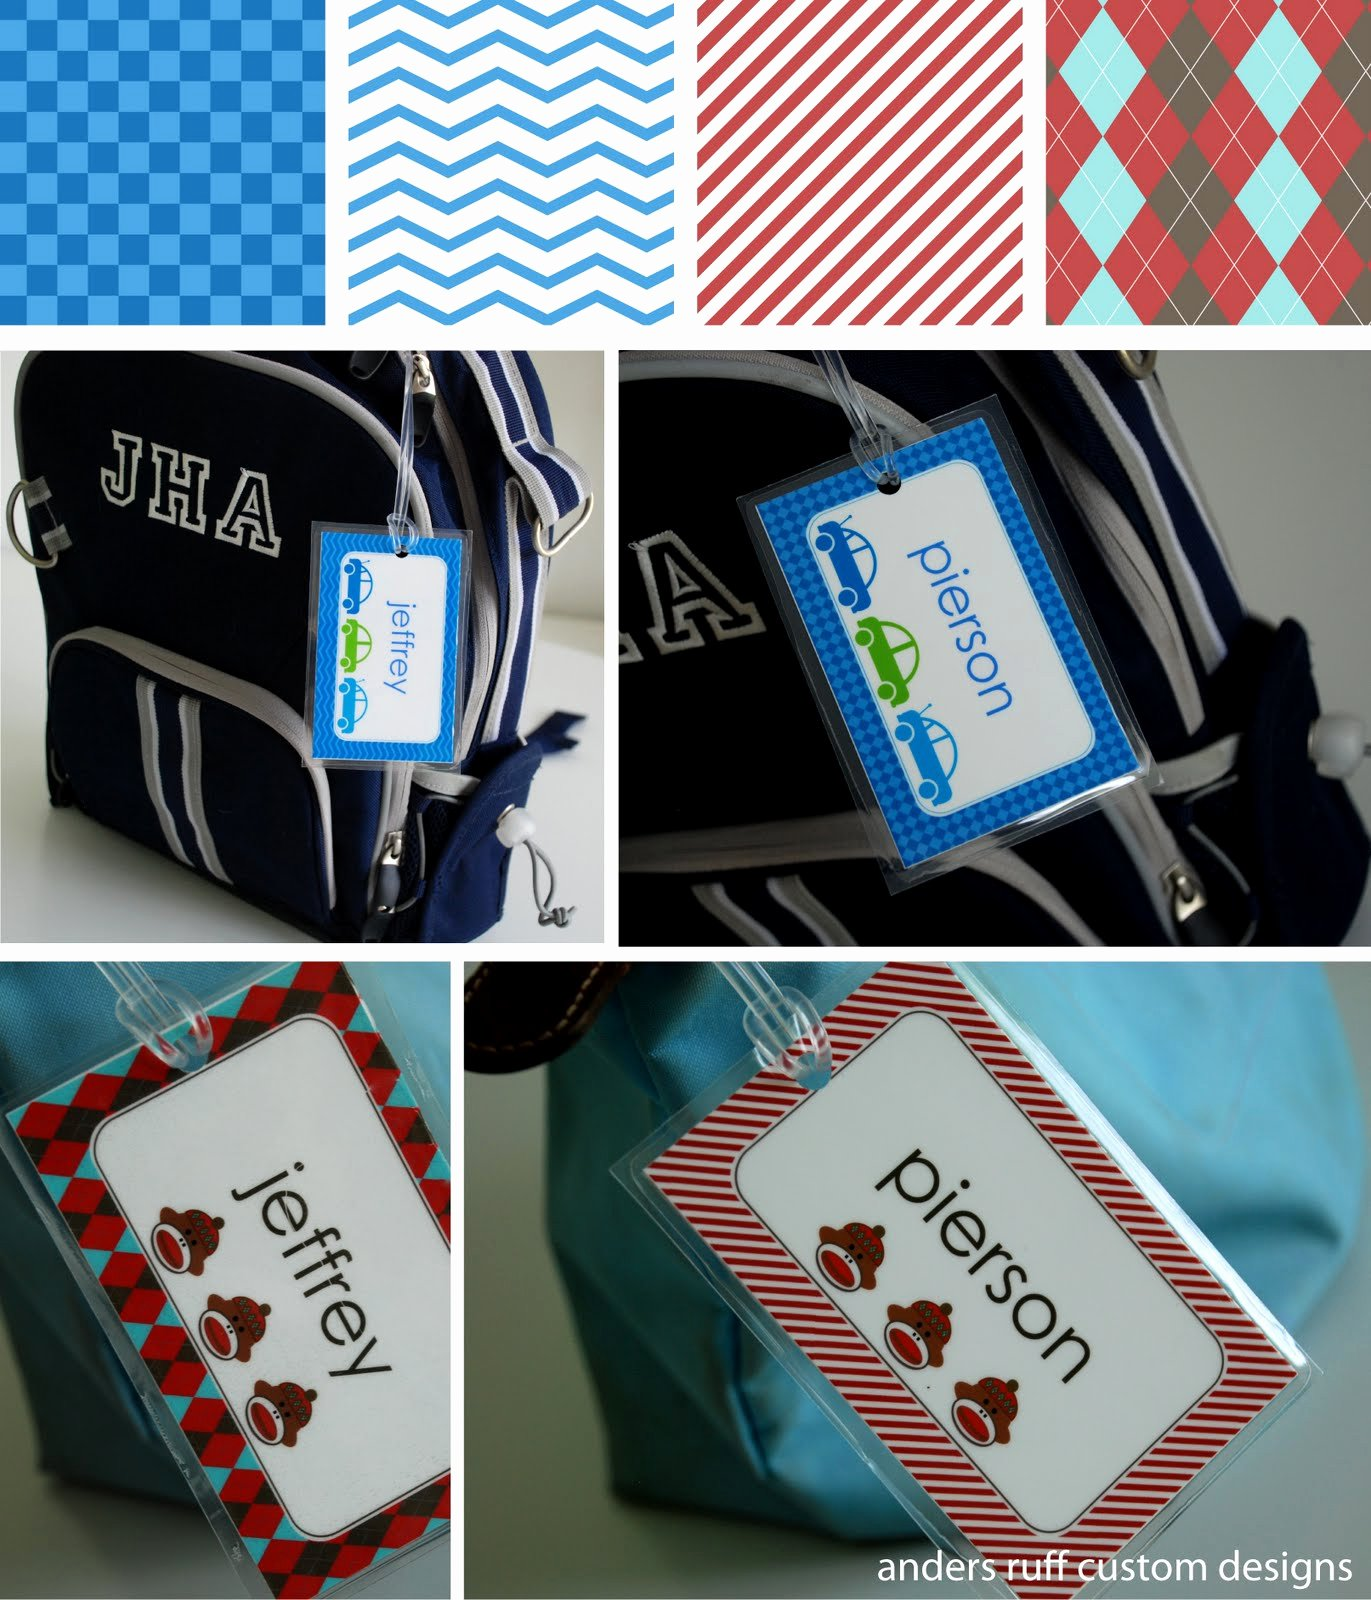 Luggage Tag Template Word New Free Printable Diy Bag Tag Template Great for Back to School anders Ruff Custom Designs Llc